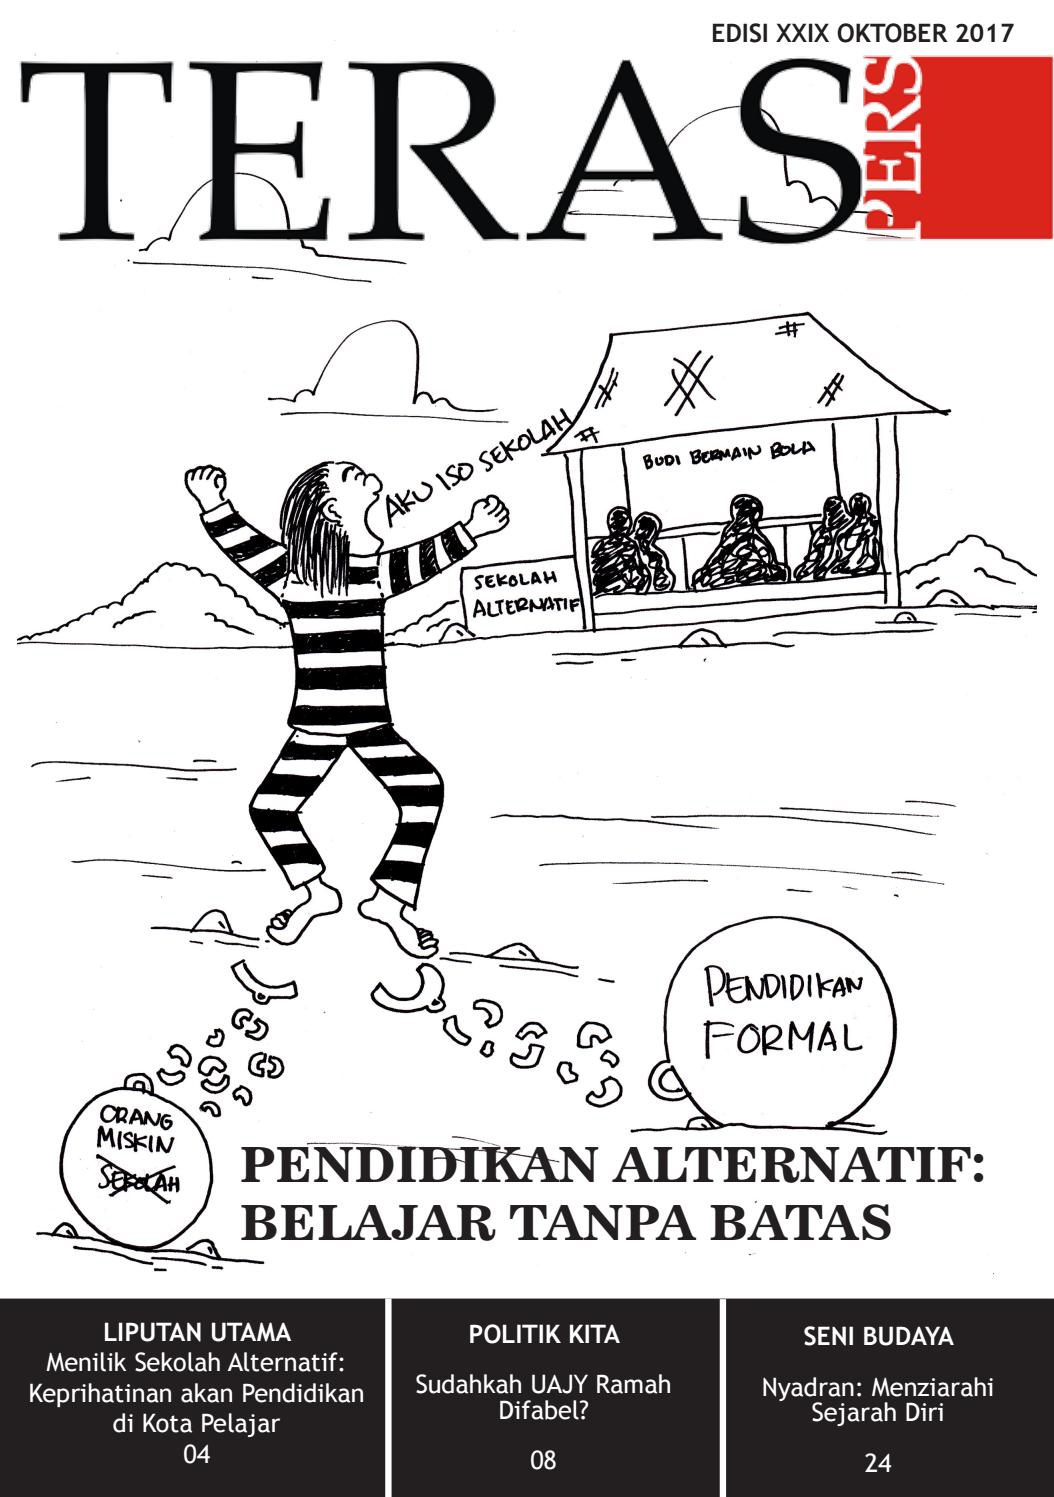 Teras Pers Edisi Xxix By Teras Pers Fisip Uajy Issuu